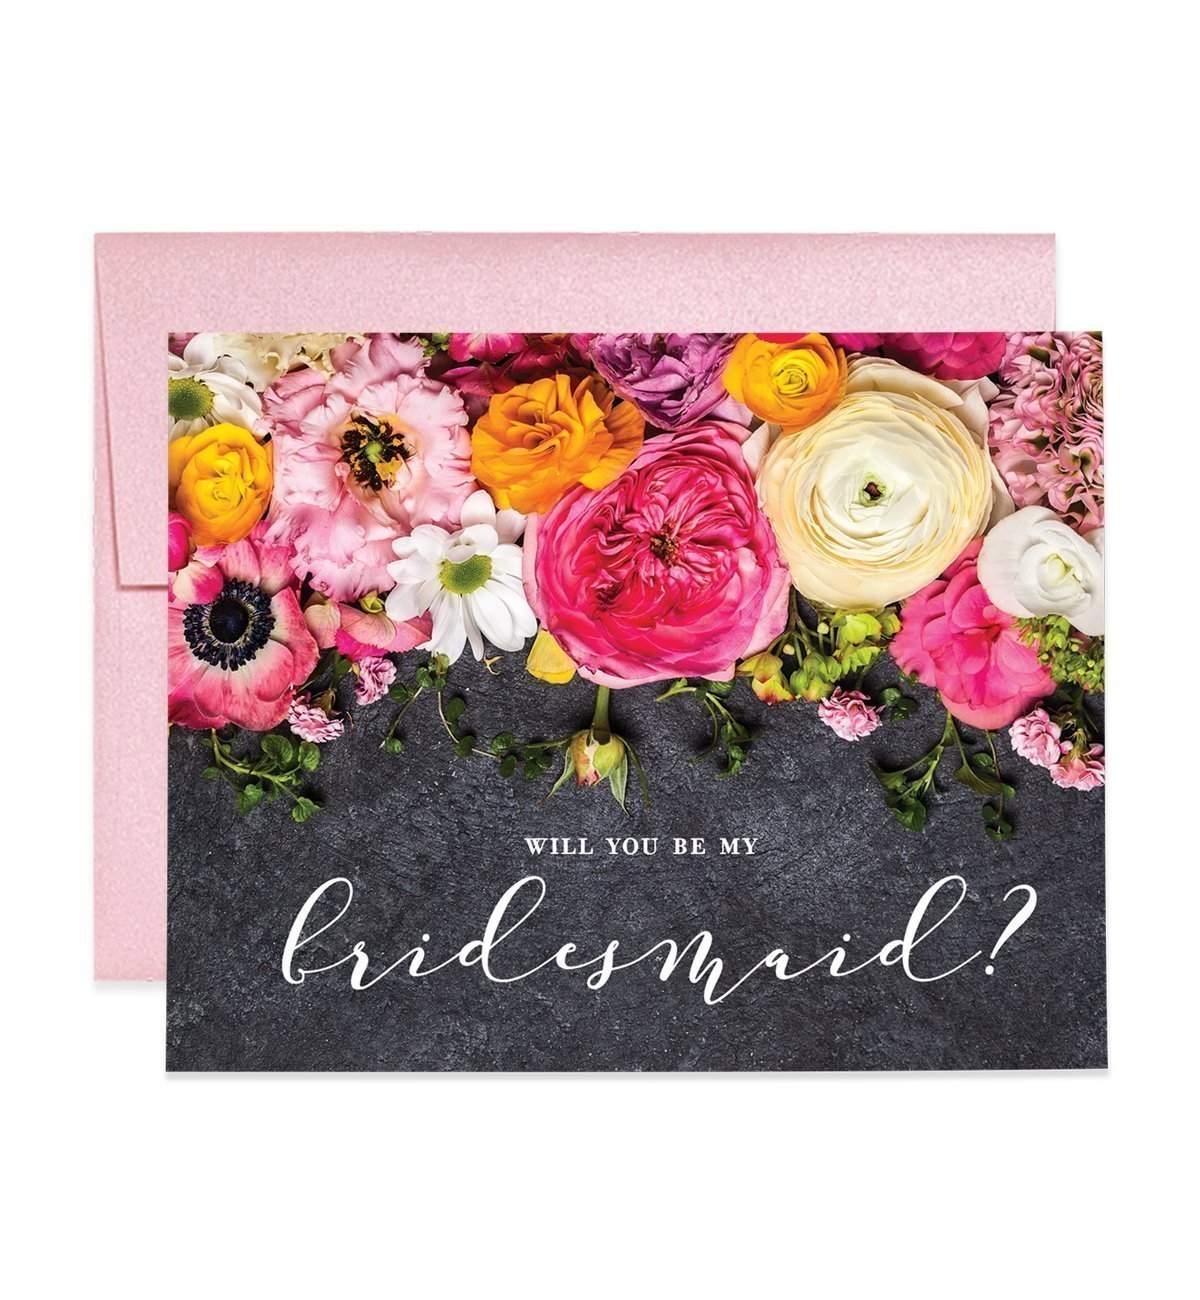 Rustic Bridesmaid Cards Will You Be My Brides maid? Proposal Box Pack (Set of 5) Chalkboard Floral Pink Blooms Card Five Wedding Bridal Party Cards Blush Pink Shimmer Metallic Envelopes CW0011-1